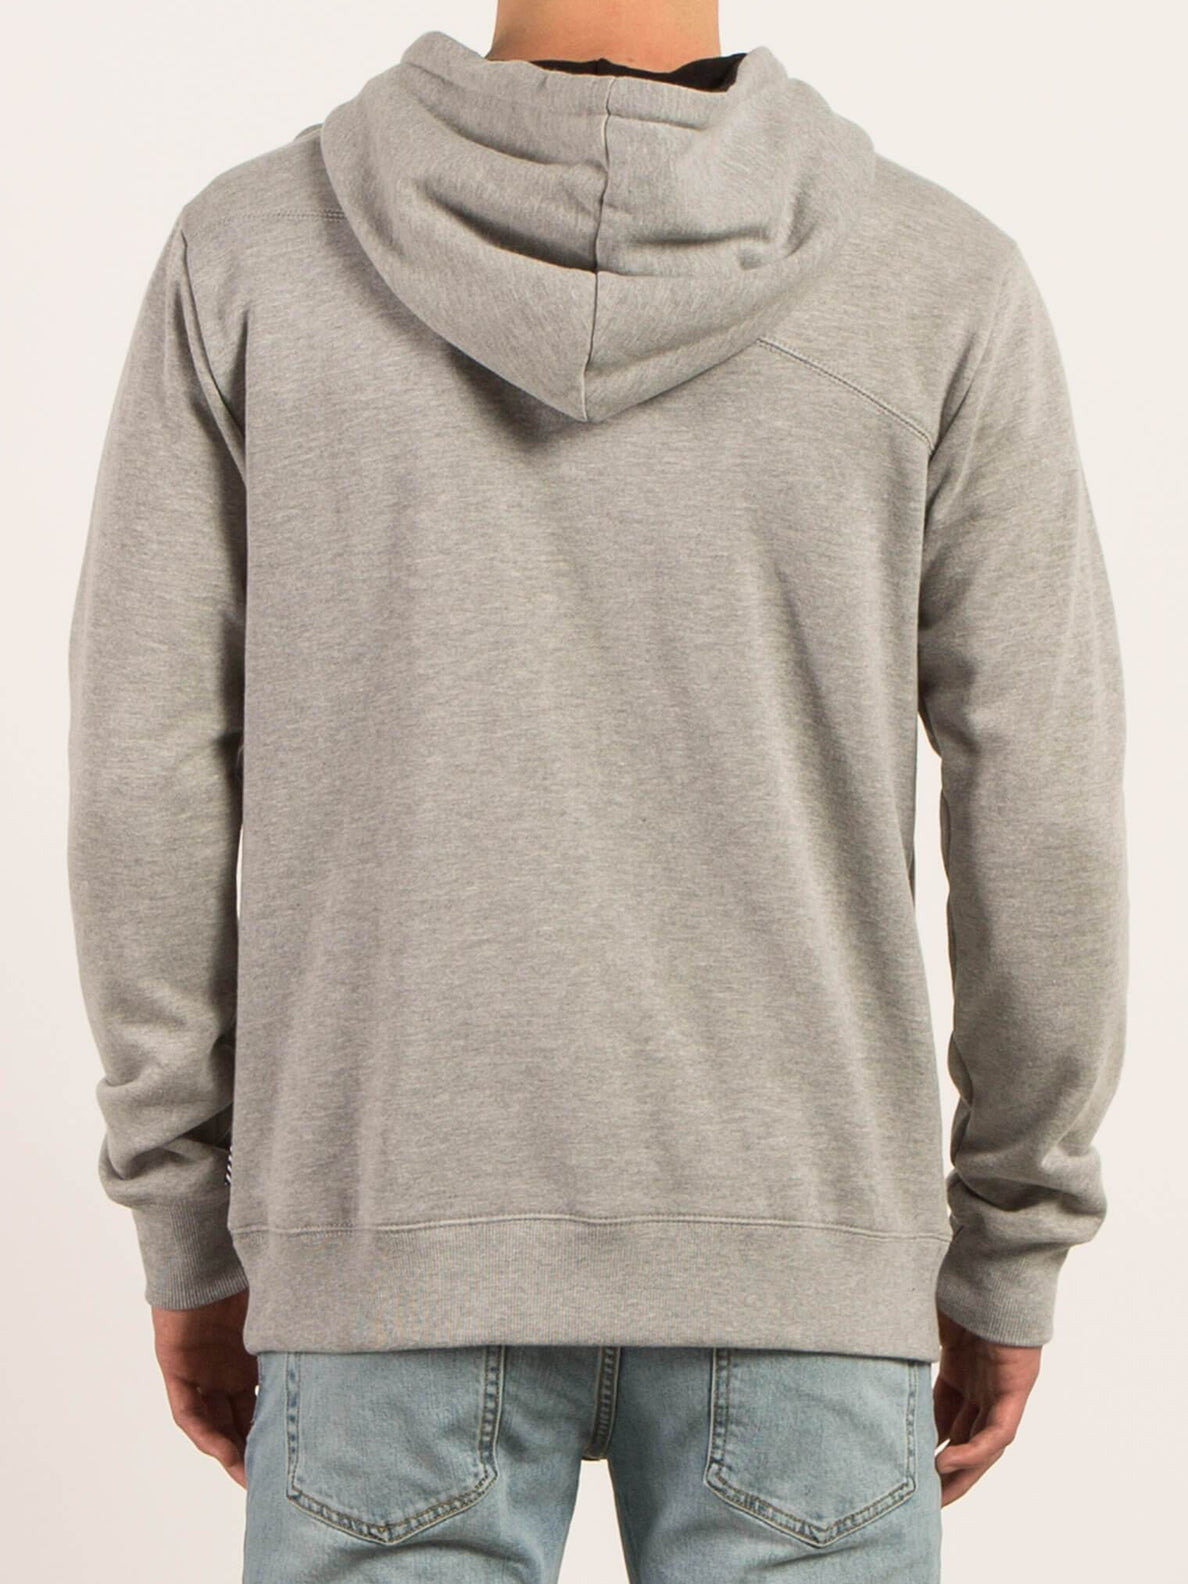 Single Stone Pullover Hoodie - Grey